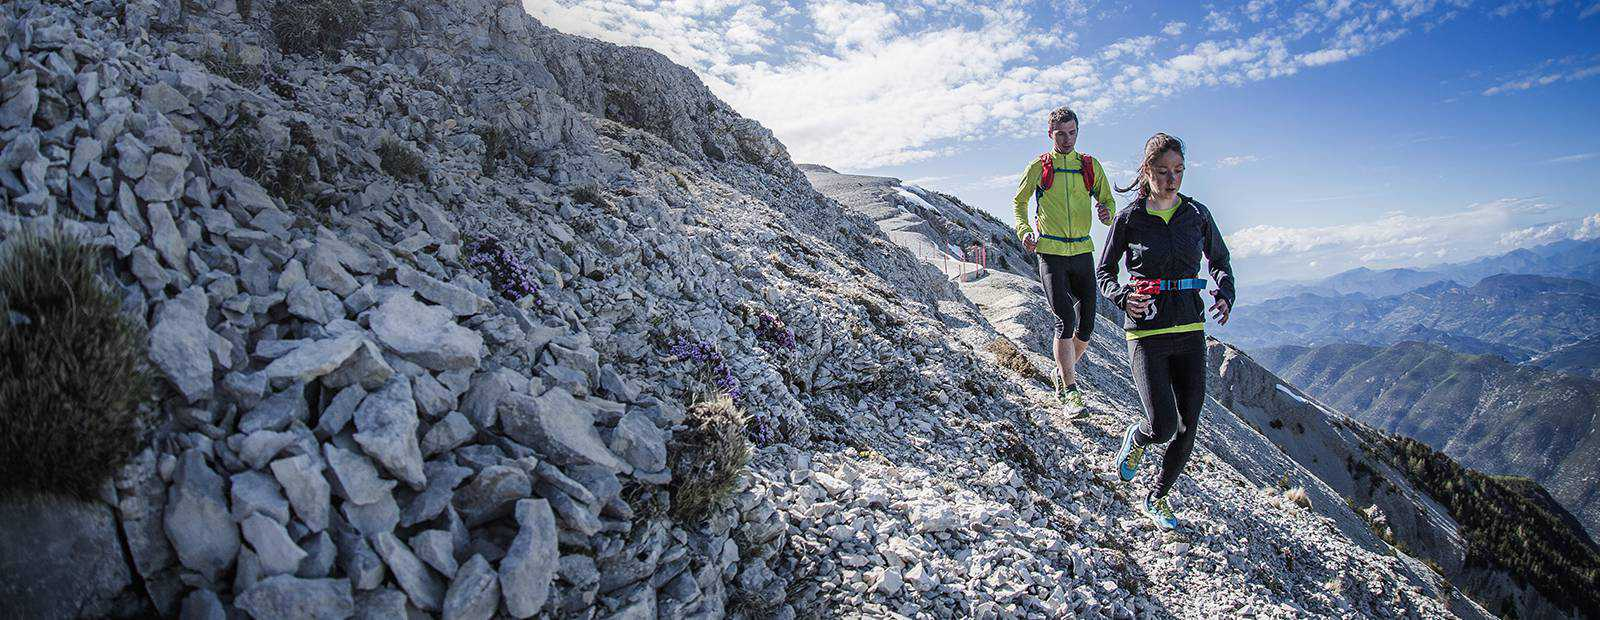 Scott zoekt atleten voor No Shortcuts Running Team